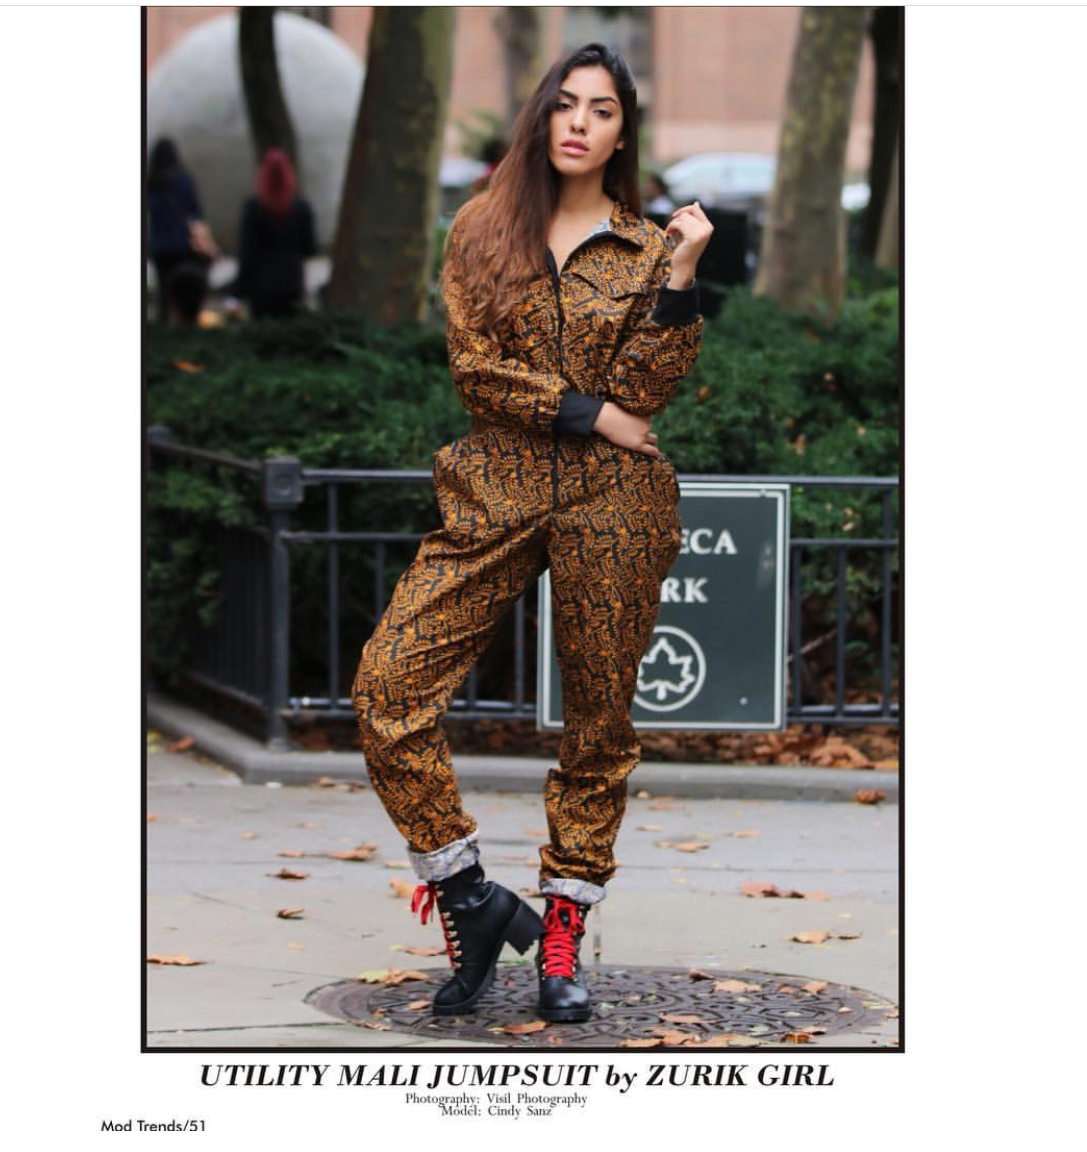 FALL 2018 FASHION IN MOD MAGAZINE featuring ZURIKGIRL UTILITY JUMPSUIT